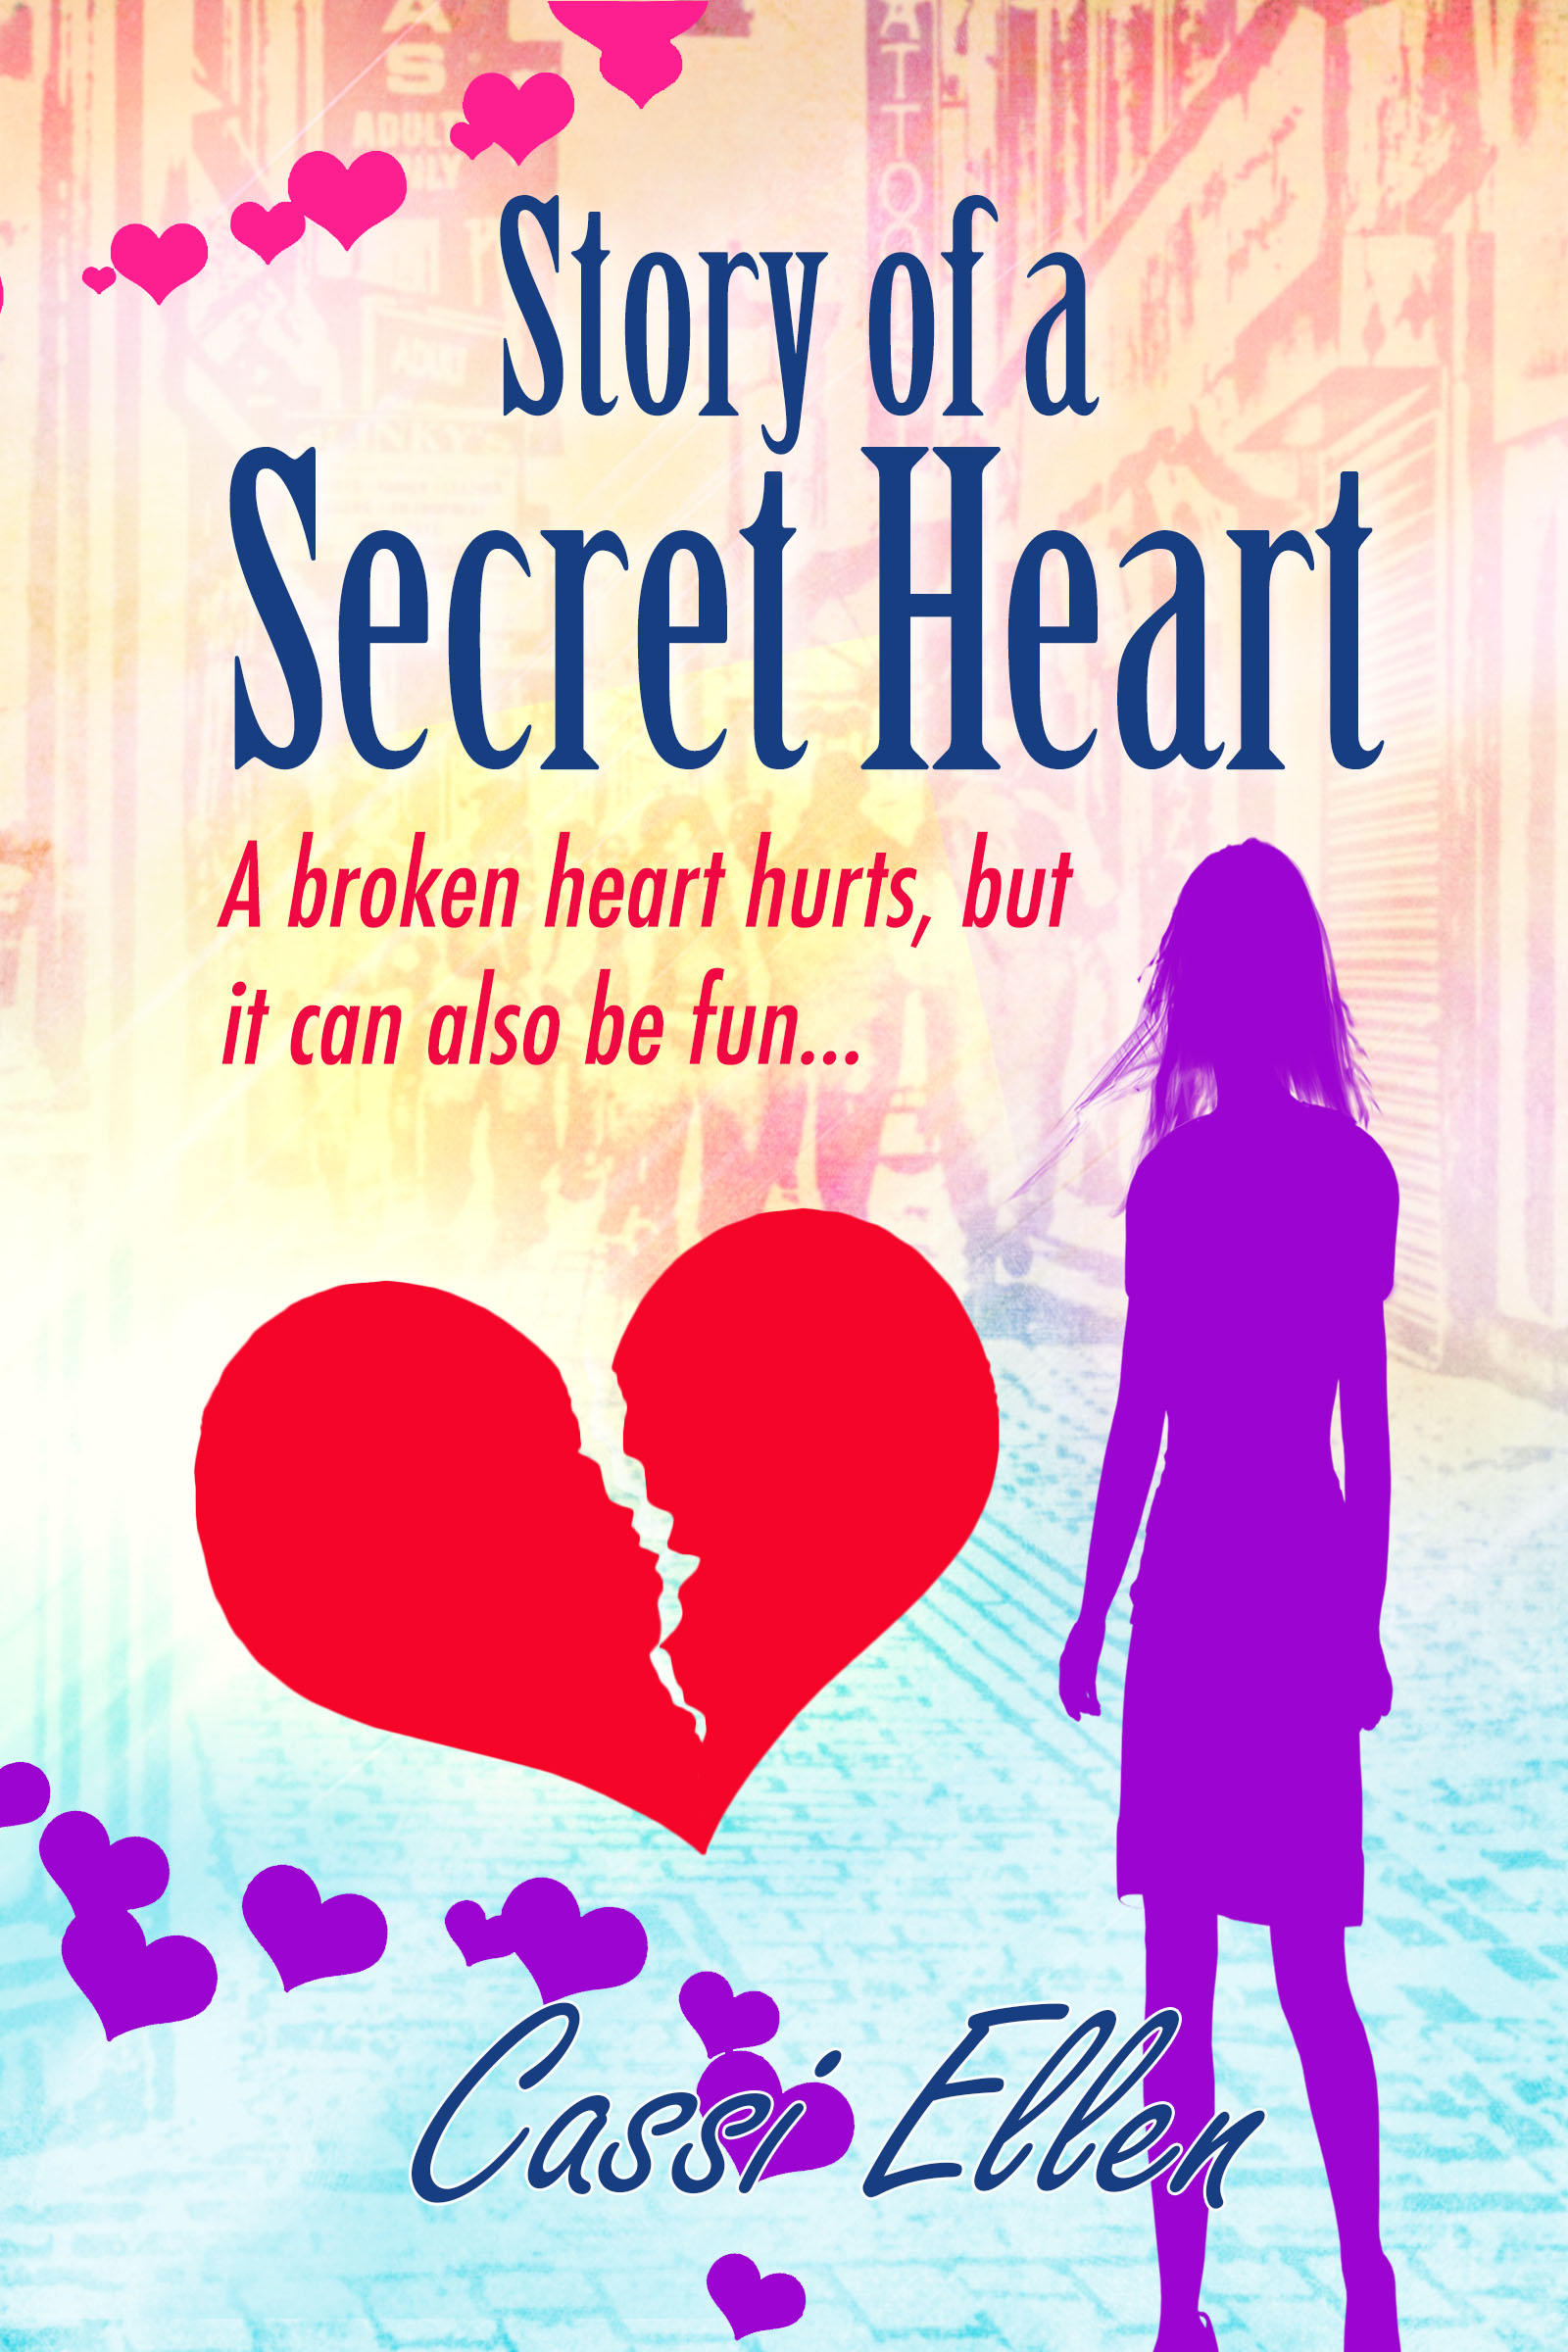 Story of a Secret Heart, chick lit book cover